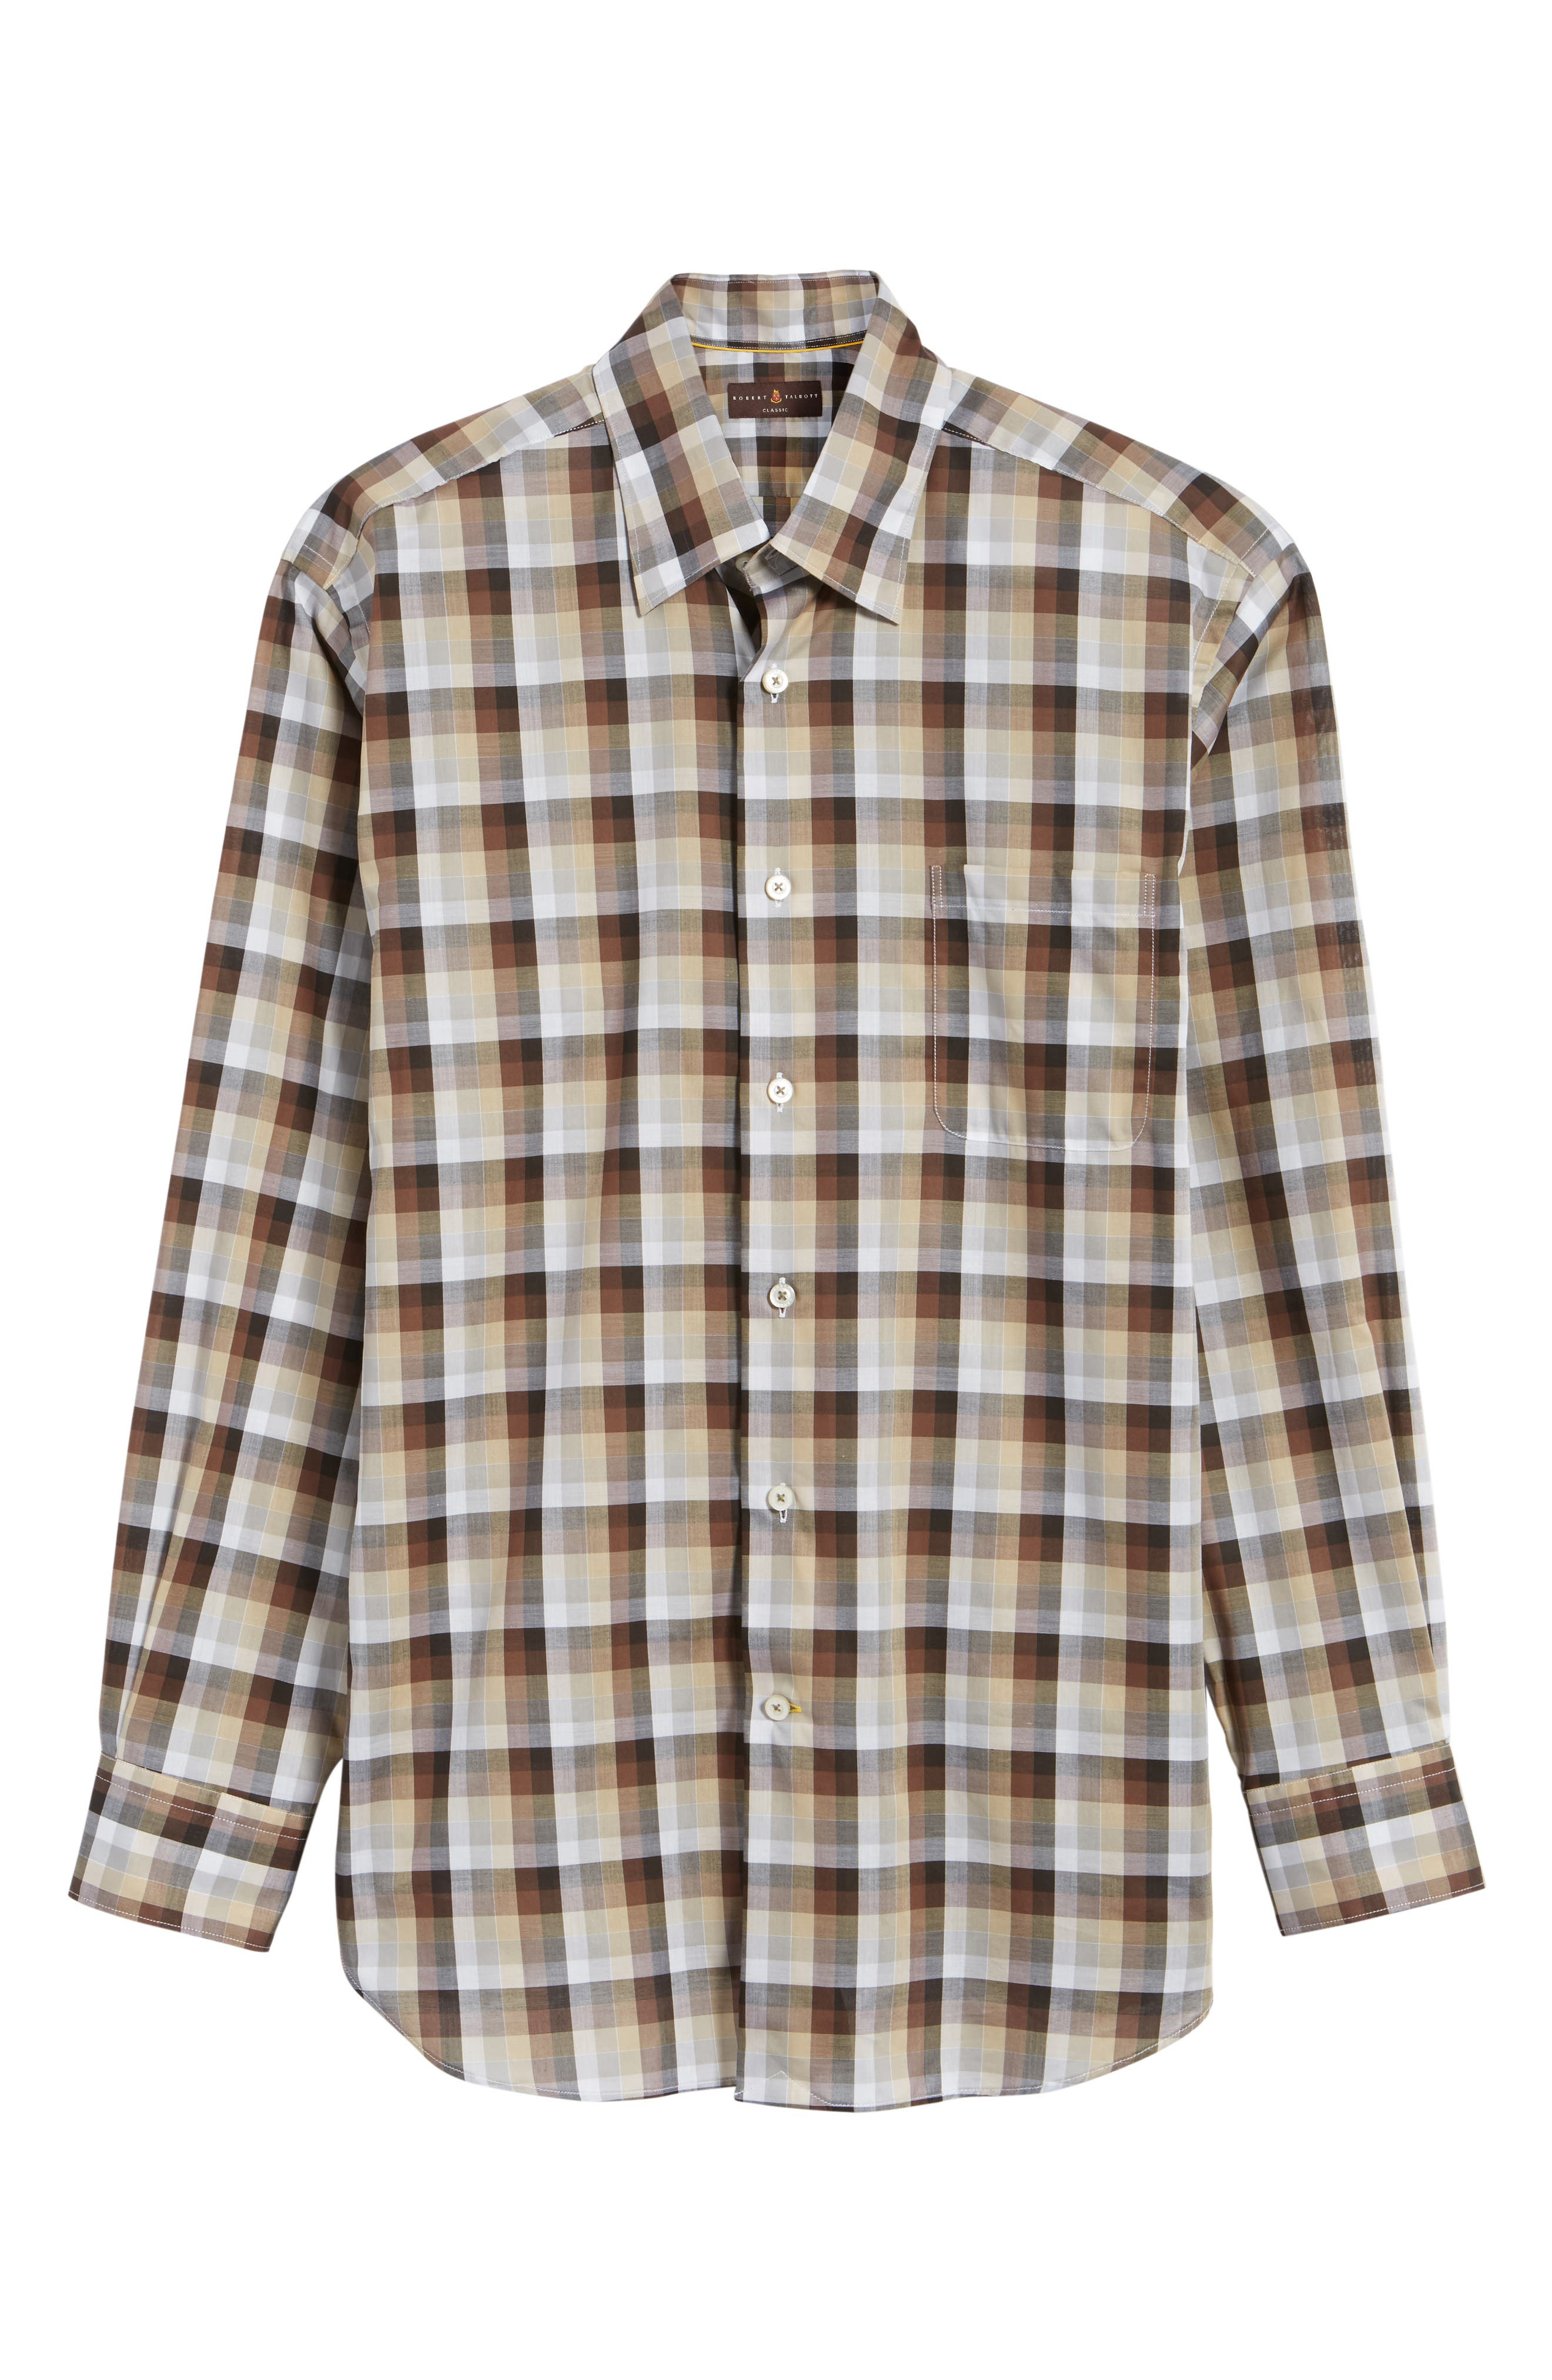 Anderson Classic Fit Check Sport Shirt,                             Alternate thumbnail 6, color,                             200